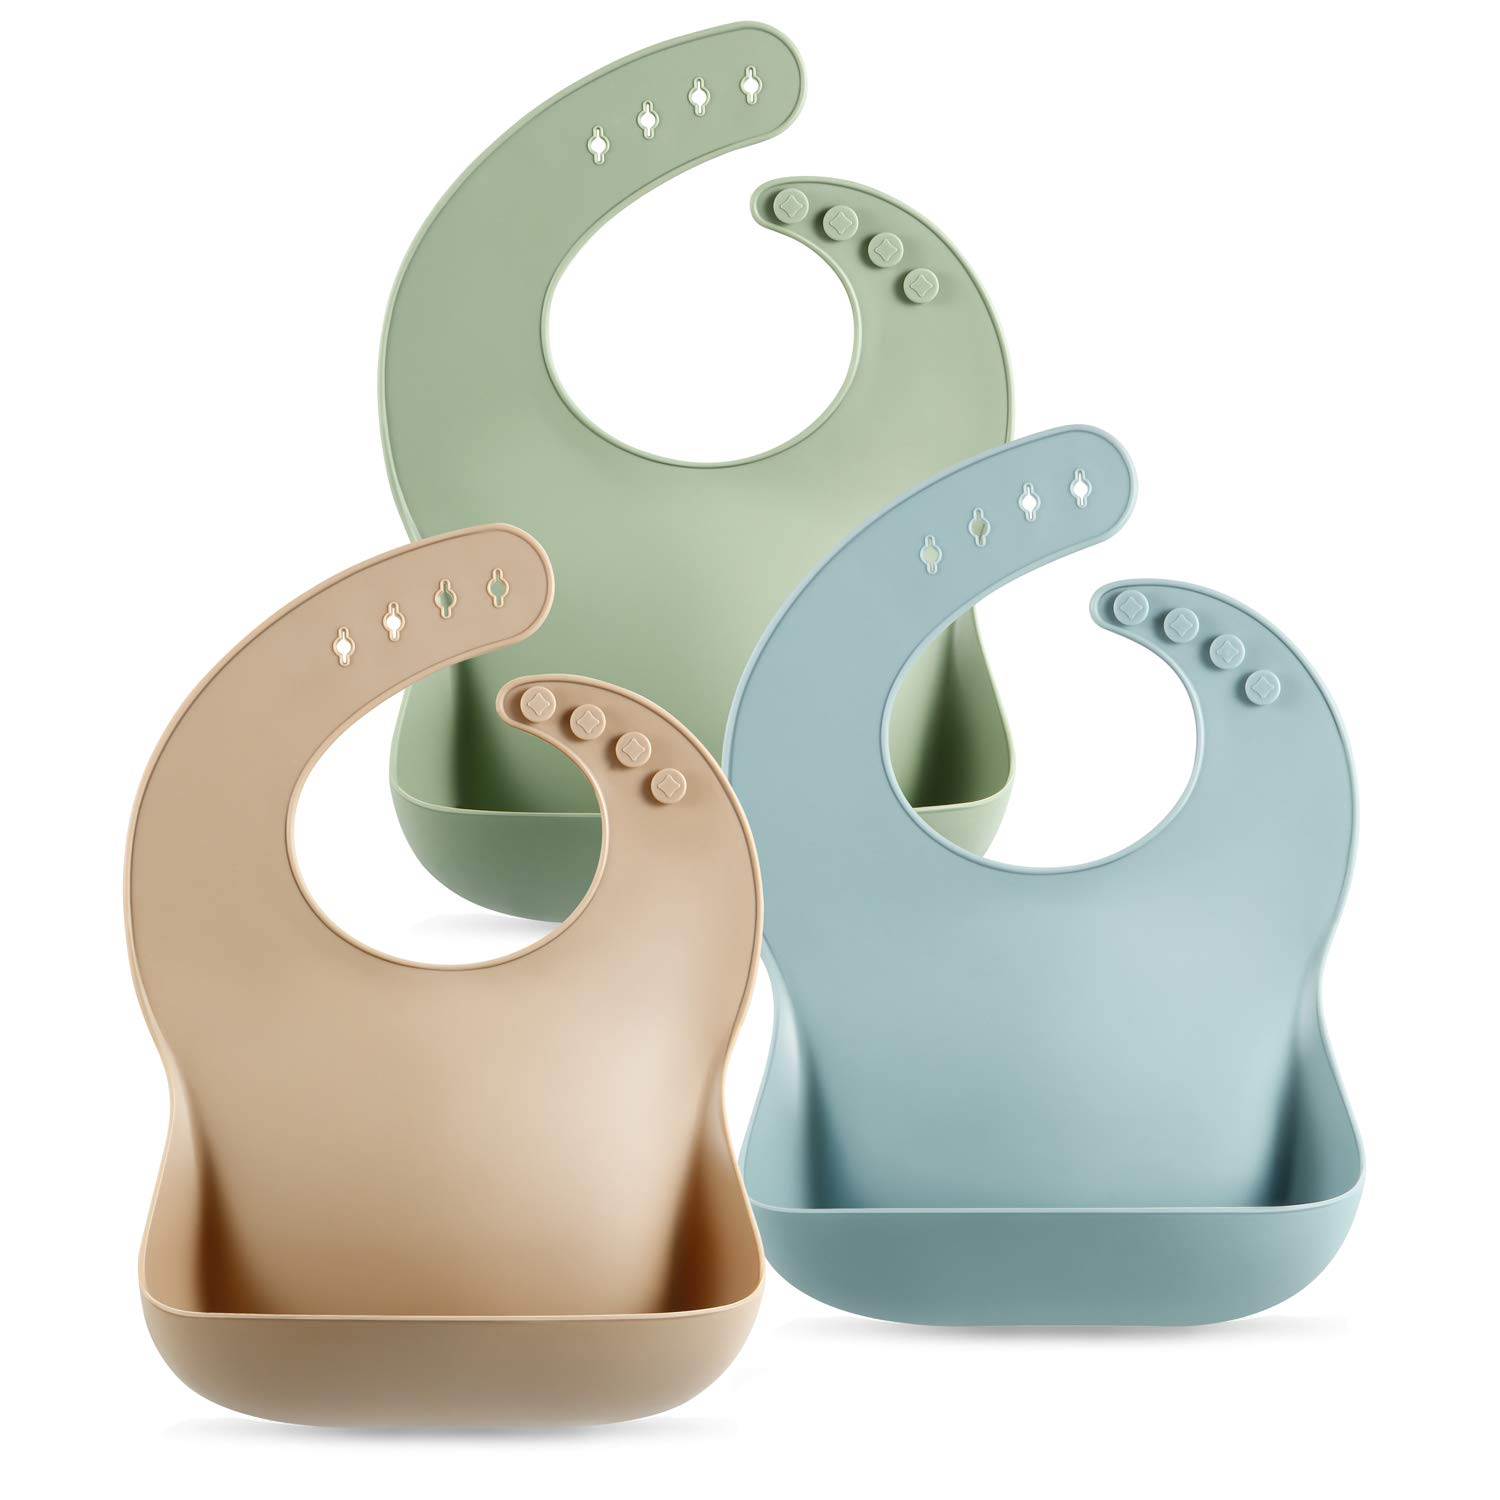 PandaEar Set of 3 Cute Silicone Baby Bibs for Babies & Toddlers (10-72 Months) Waterproof, Soft, Unisex, Non Messy (Brown/Blue/Green)